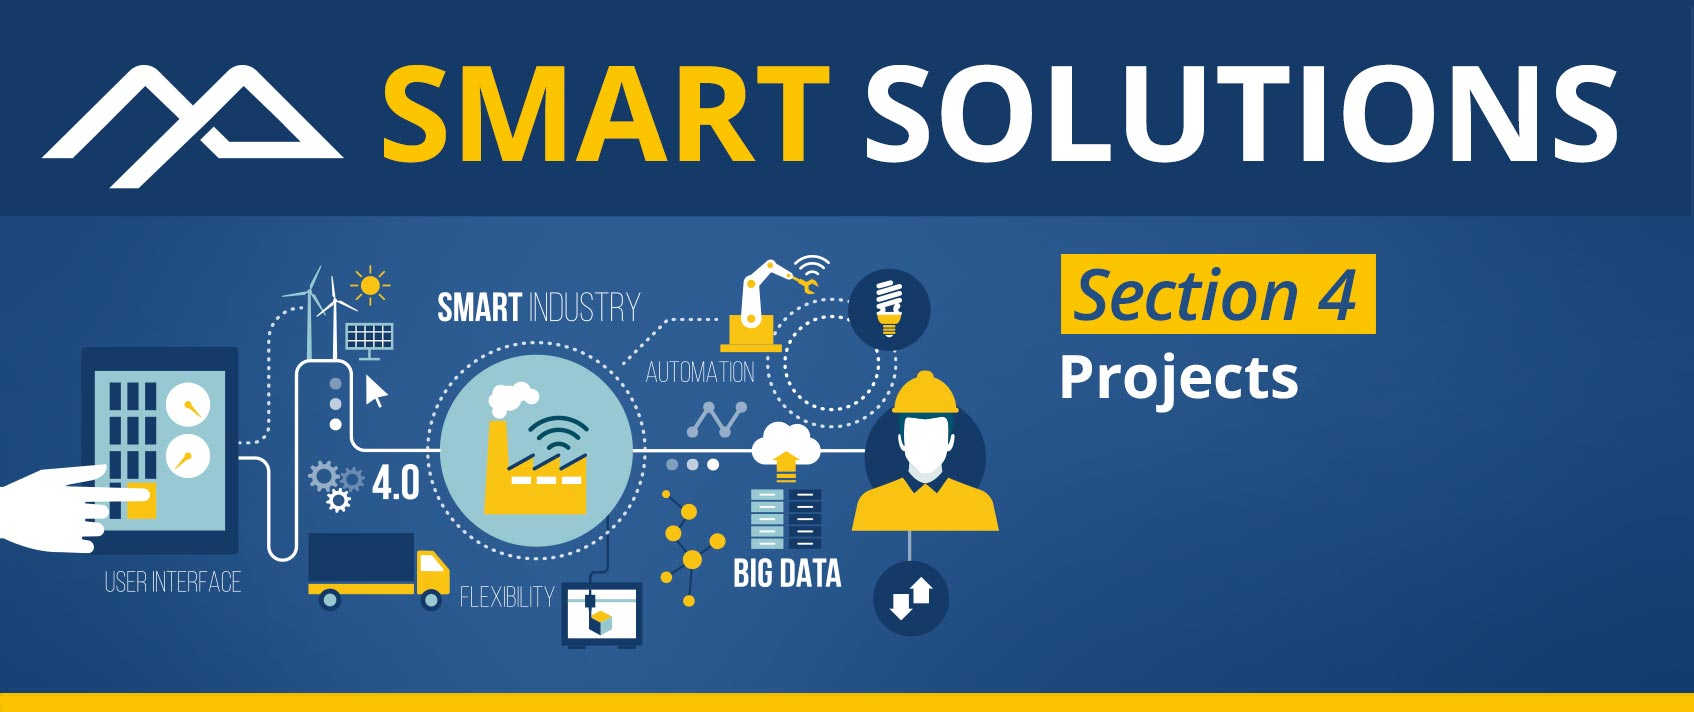 Smart Solutions - Projects